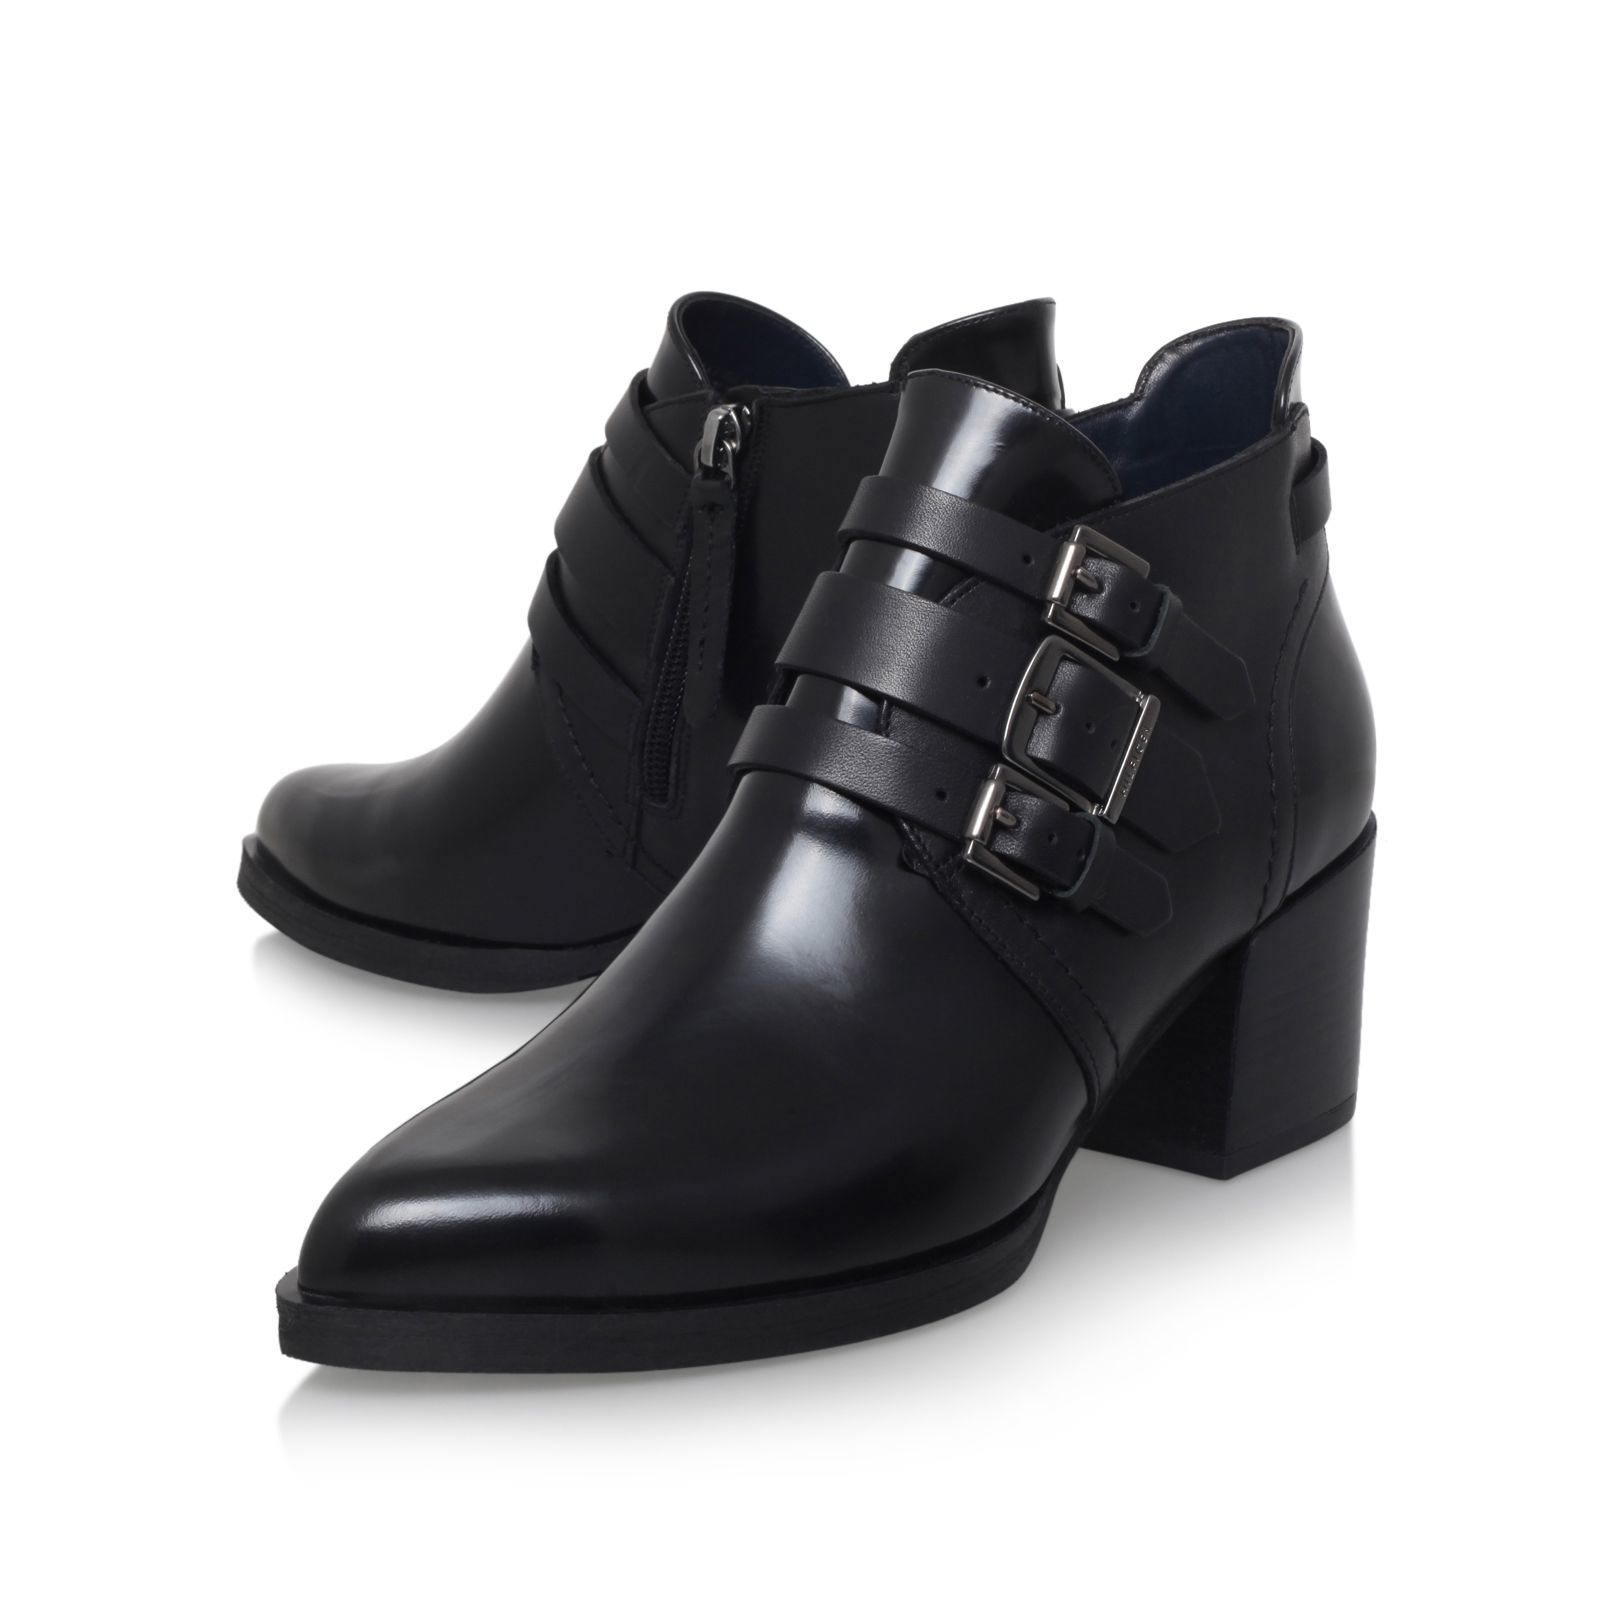 tommy hilfiger poppi 1a ankle boots in black lyst. Black Bedroom Furniture Sets. Home Design Ideas